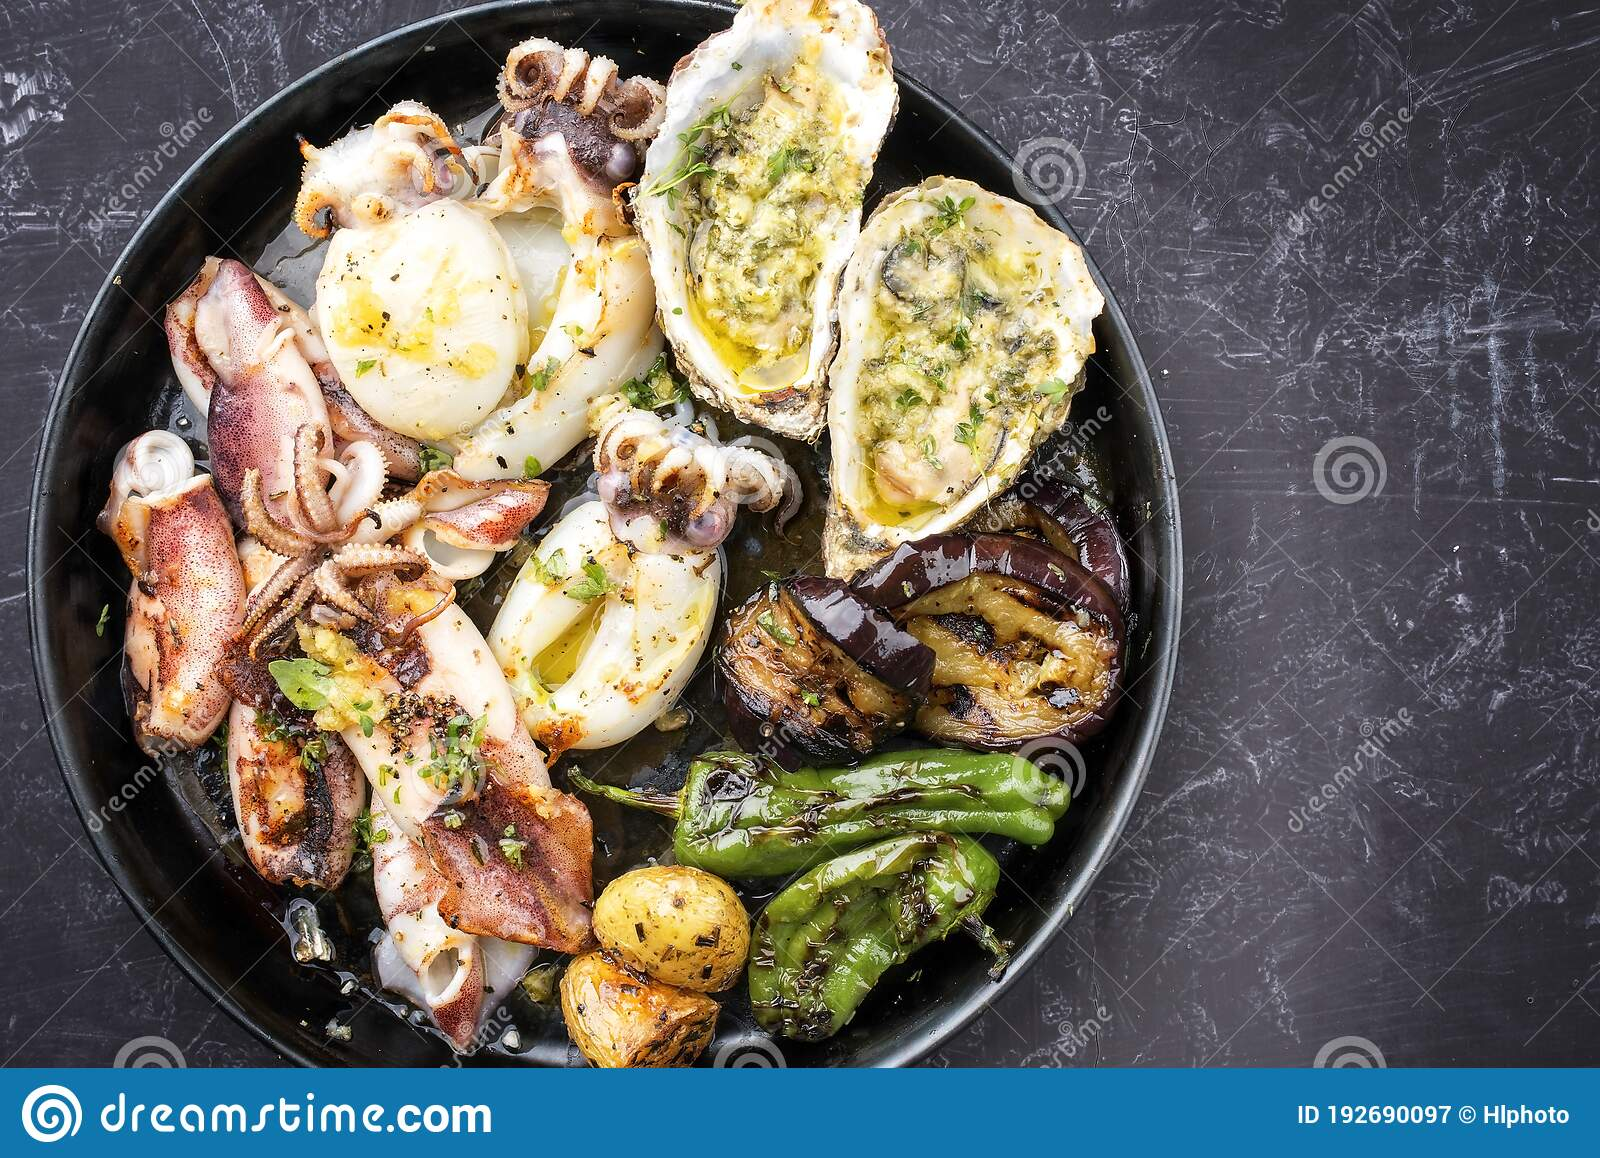 Traditional Barbecue Seafood Platter With Herb On A Plate Stock Image Image Of Offer Dish 192690097